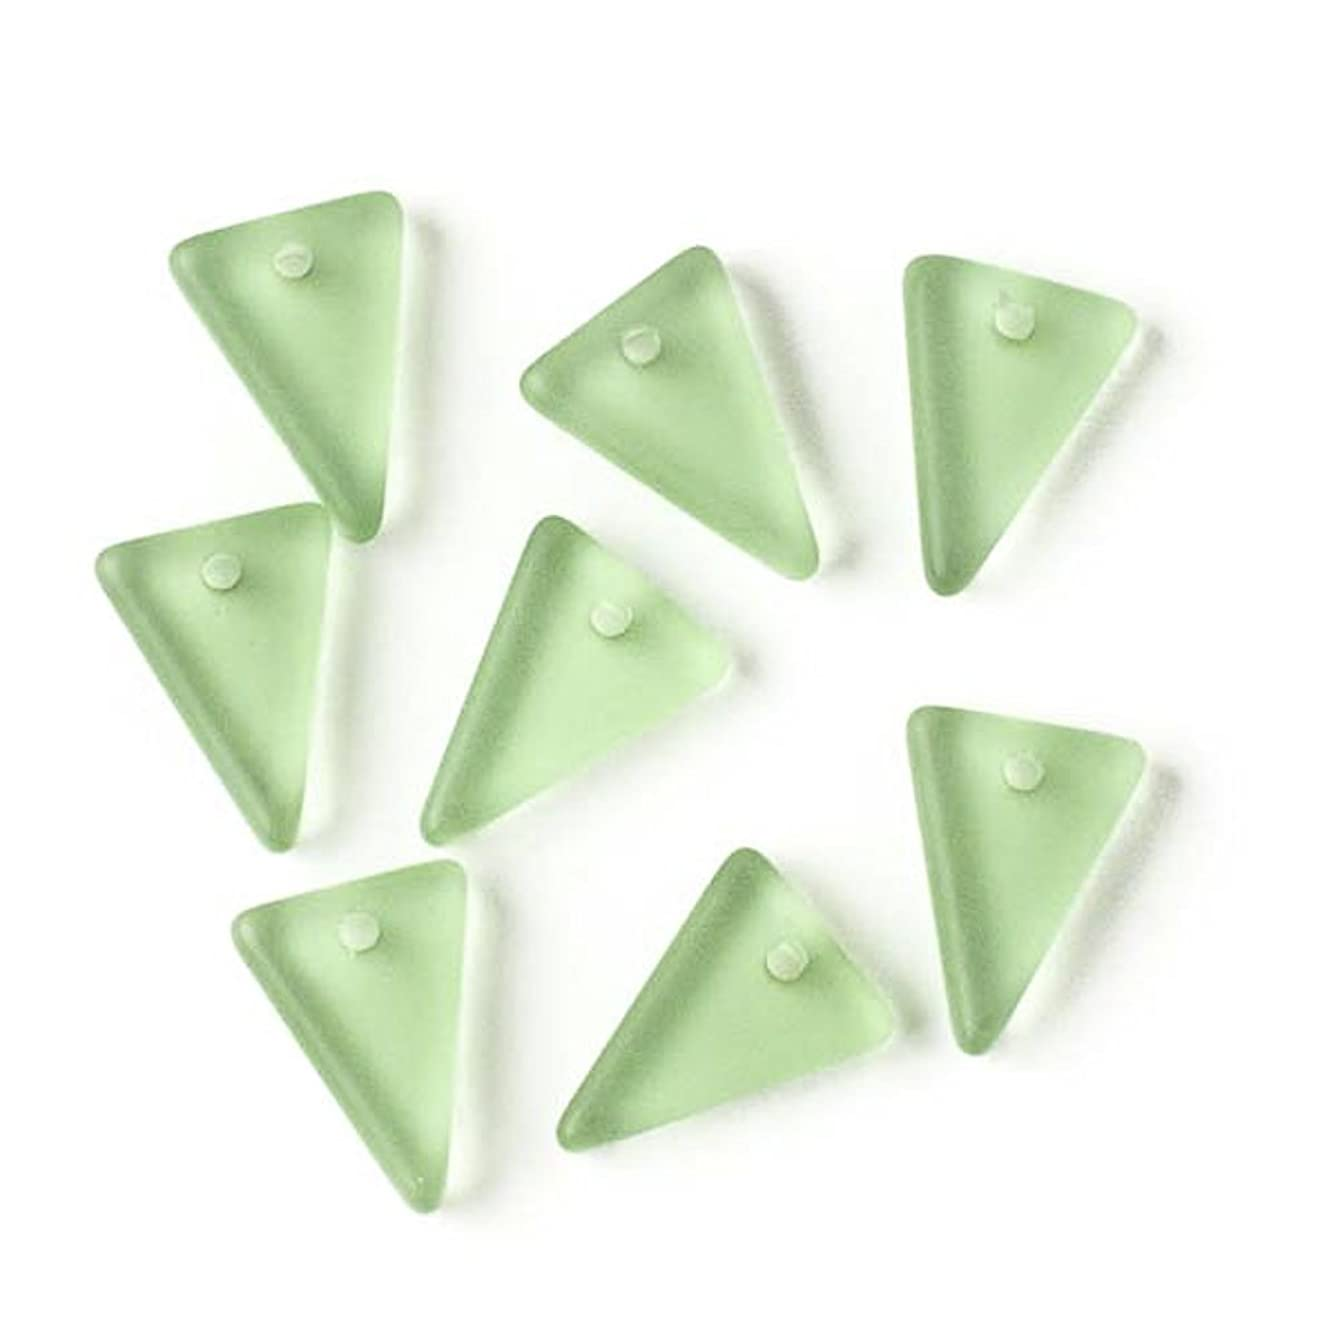 Cherry Blossom Beads Matte Peridot Green Cultured Sea Glass 13x18mm Triangle Pendants - 8 Pendants per Bag